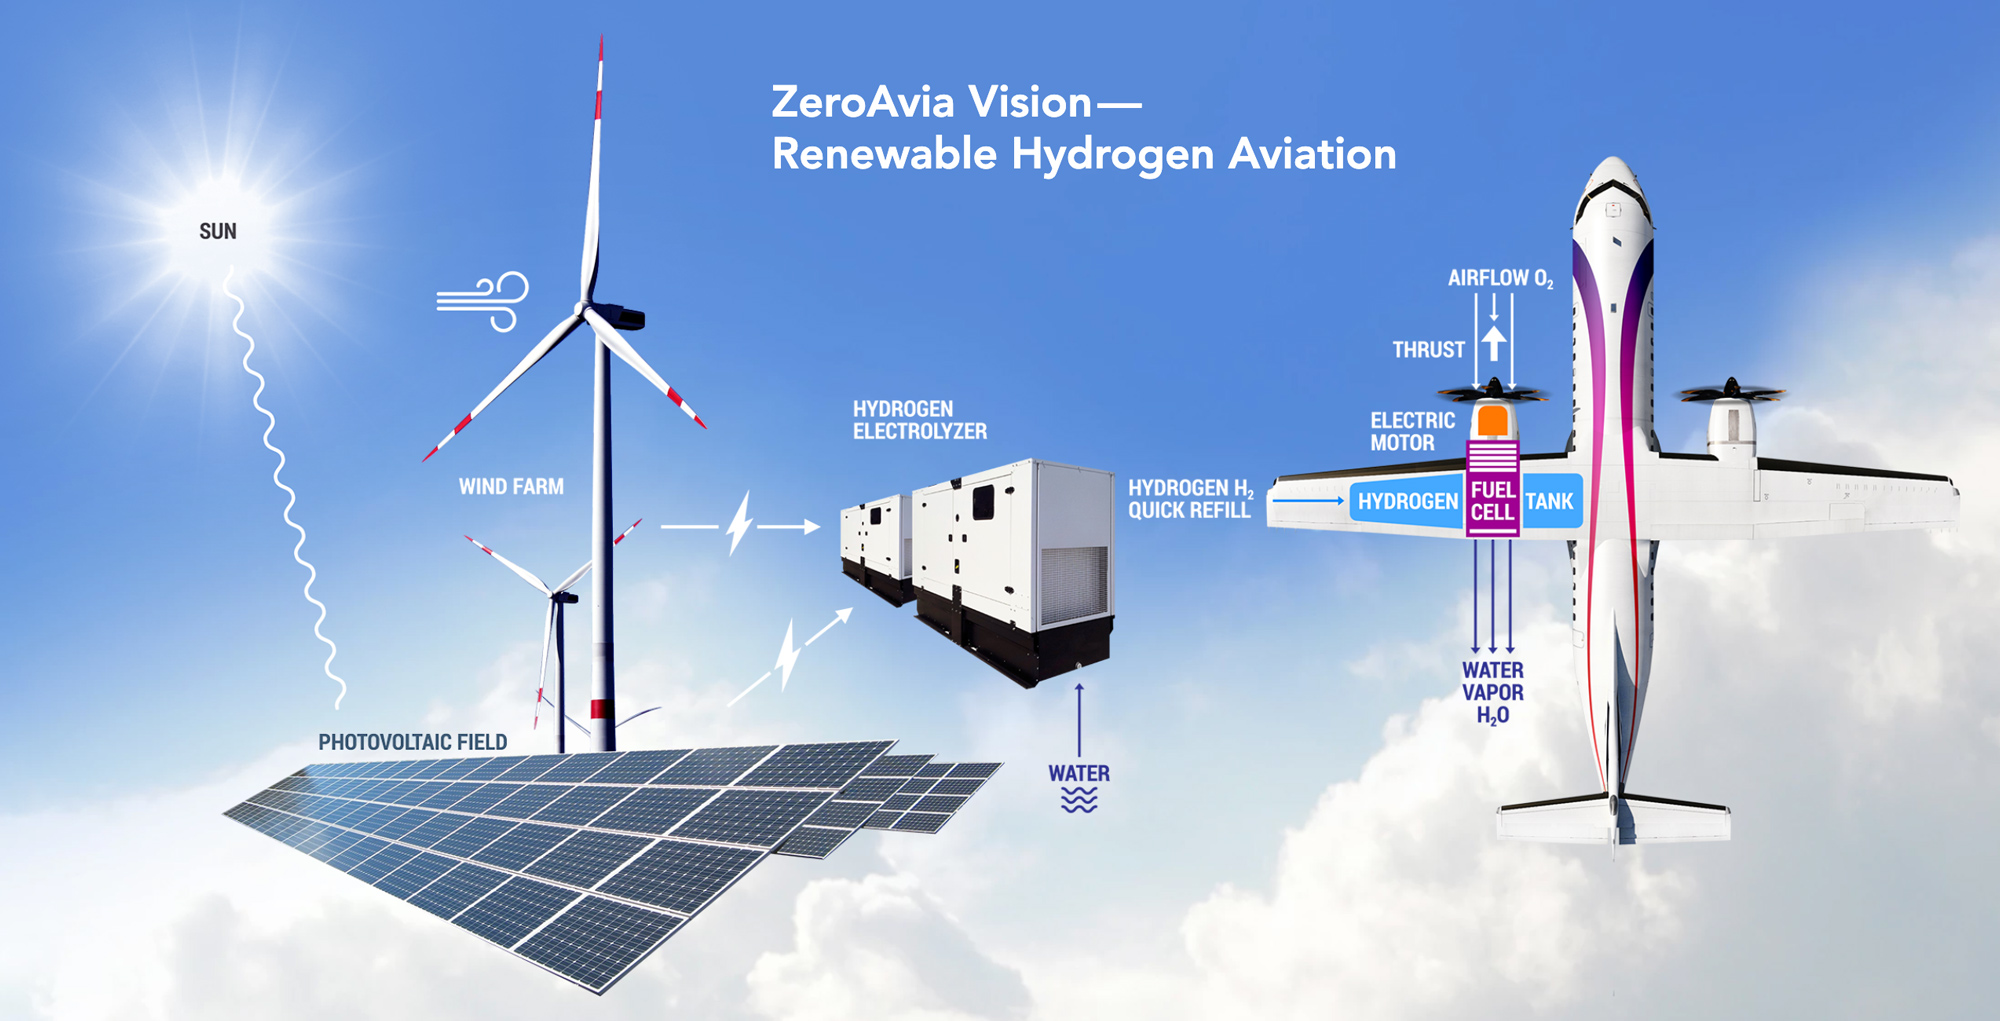 Heard Of The Sustainable Air Fuel Initiative By ZeroAvia? Read About It Here